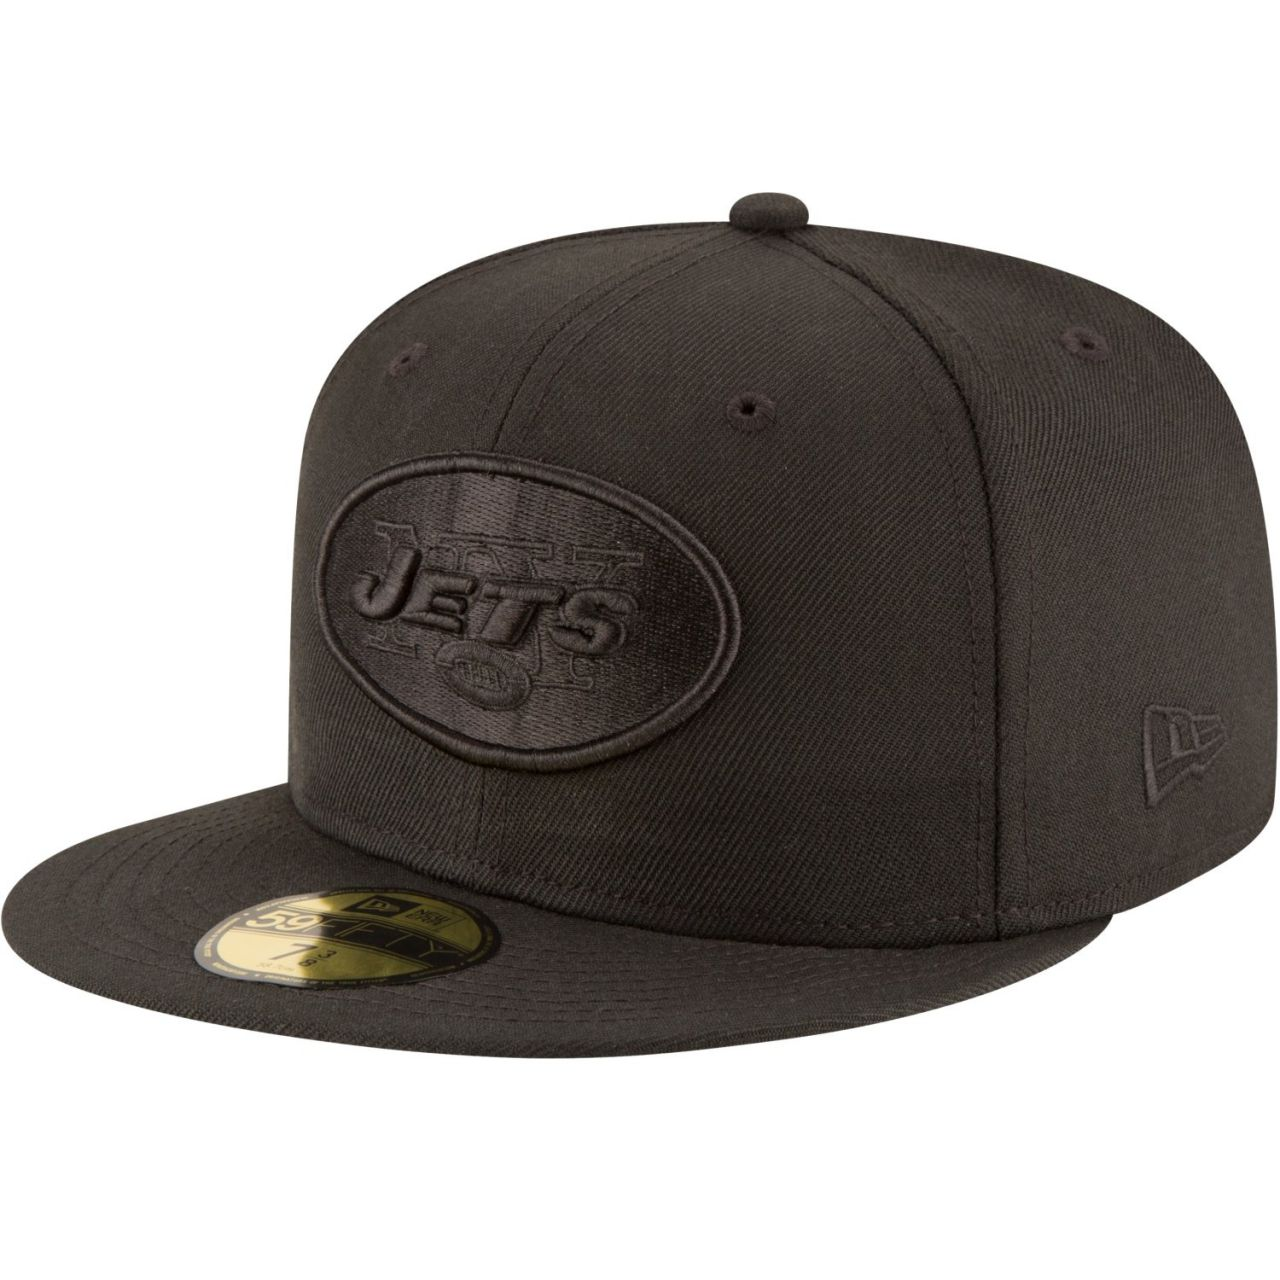 New Era 59Fifty Cap - NFL BLACK New York Jets von New Era